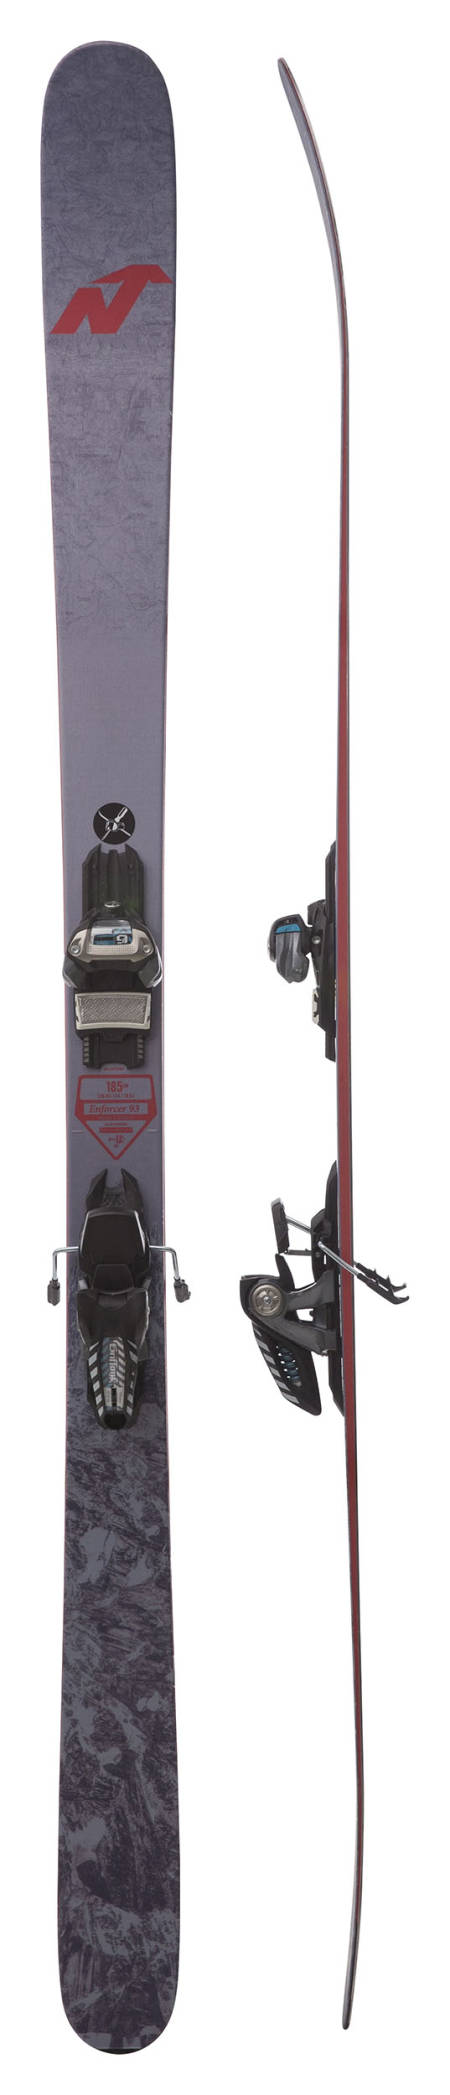 Test av Nordica Enforcer 93